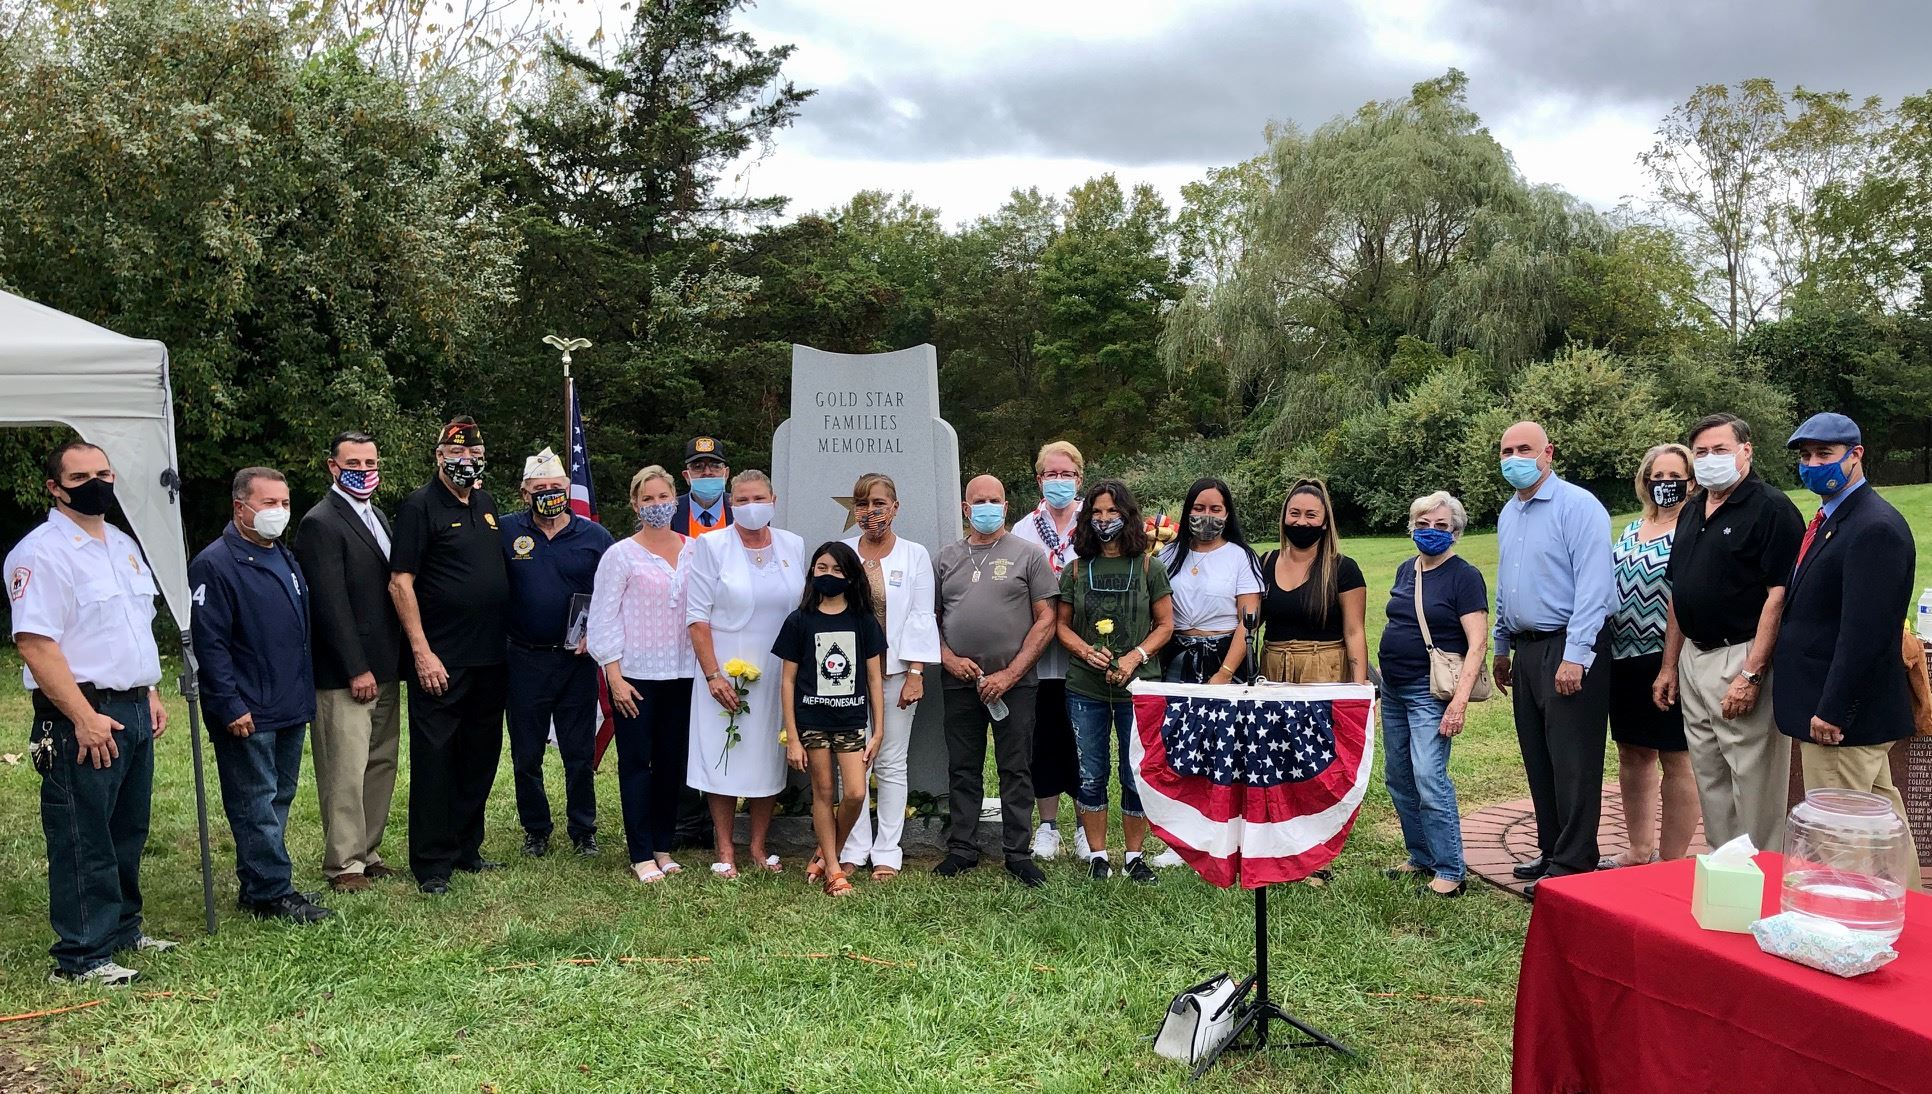 Gold Star Families, Local Elected Officials, Middle Island Civic and community members